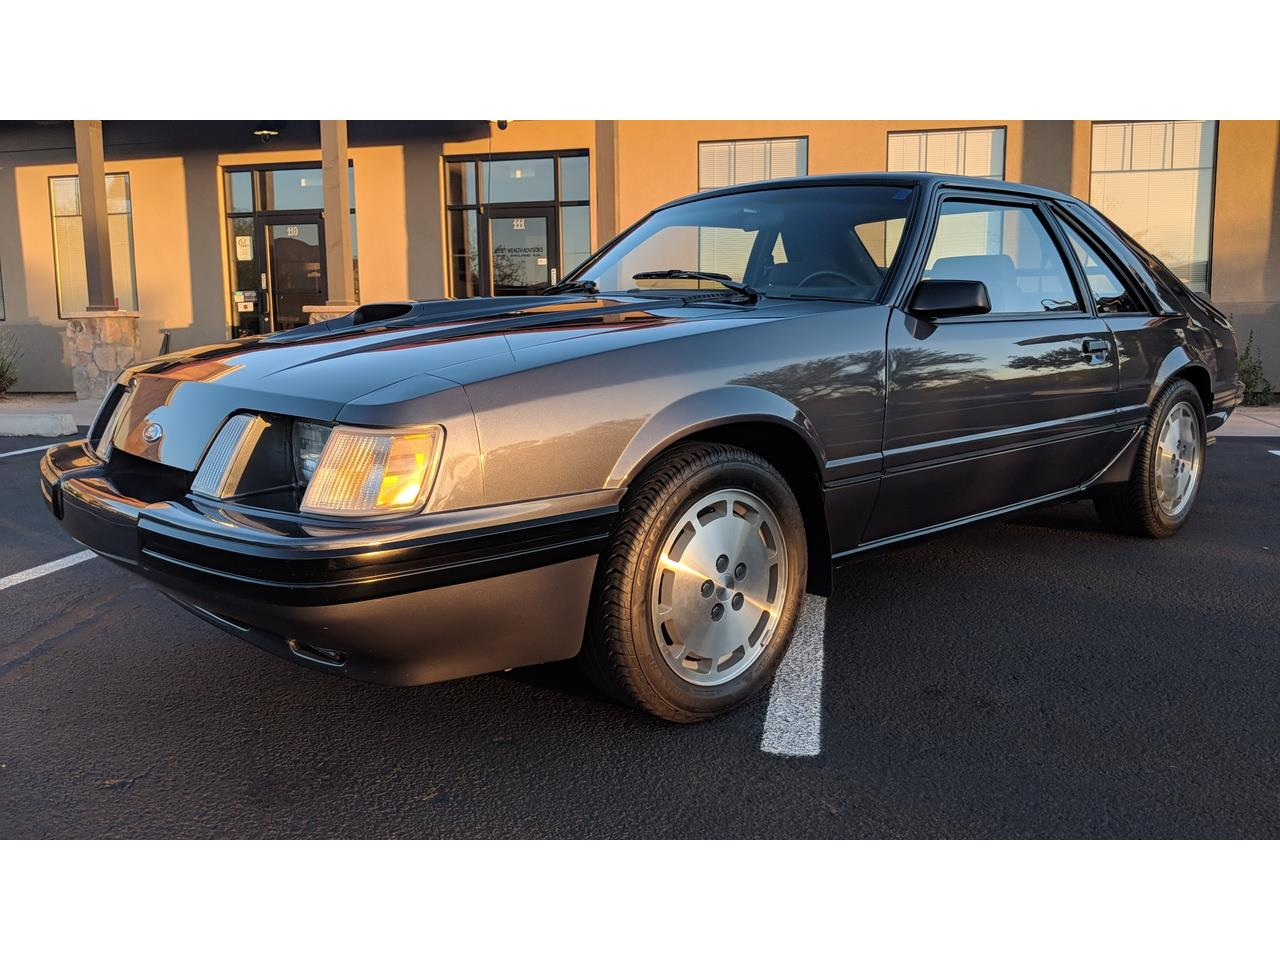 For sale 1984 ford mustang svo in north phoenix arizona